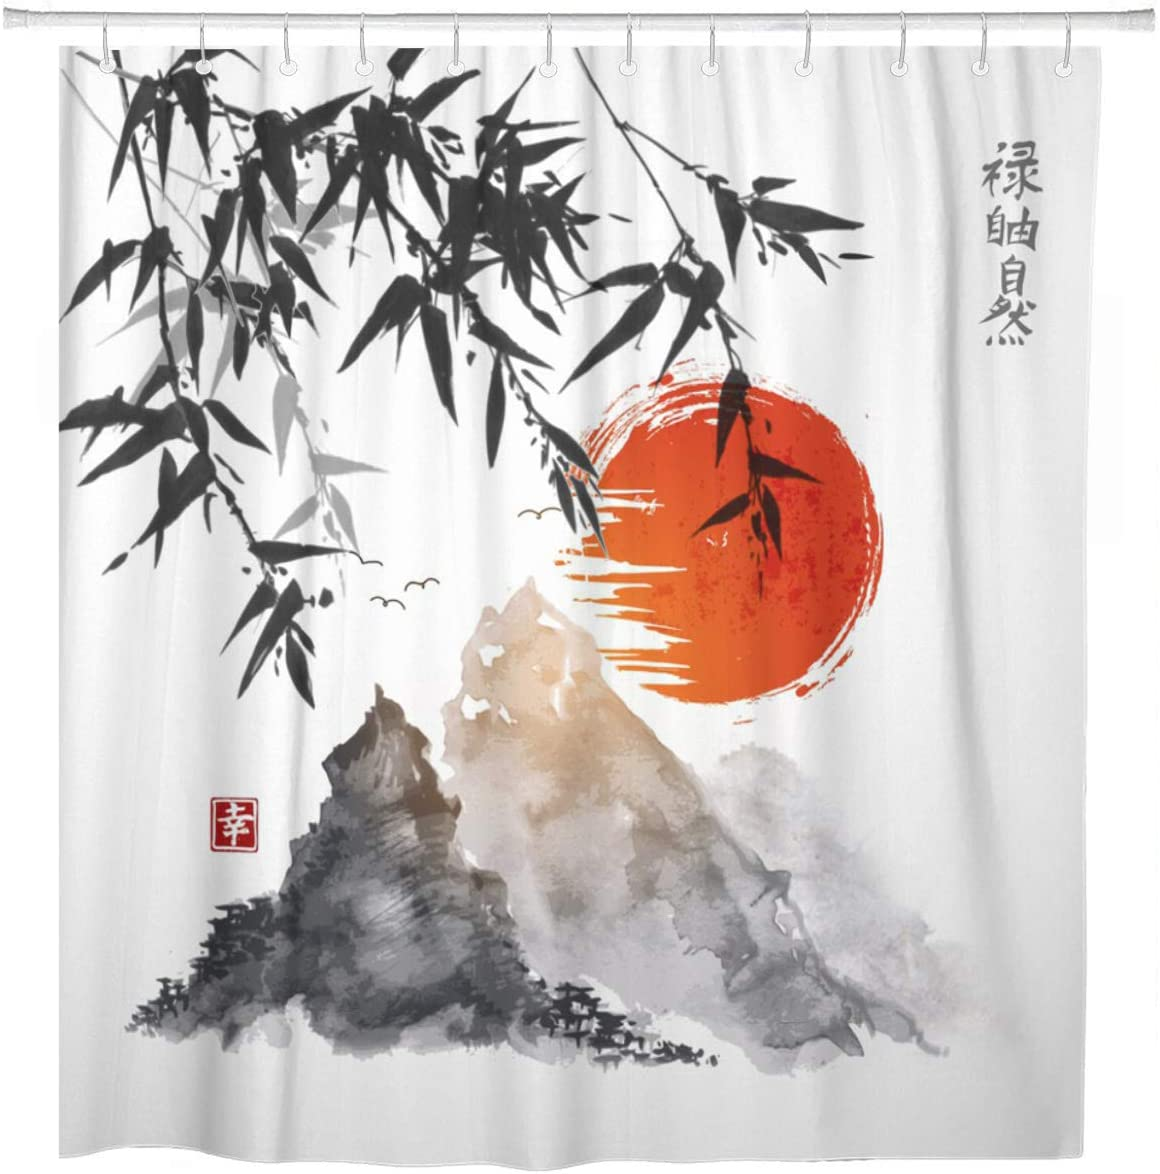 ArtSocket Shower Curtain Bamboo Trees Red Sun and Mountains Traditional Japanese Ink Home Bathroom Decor Polyester Fabric Waterproof 72 x 72 Inches Set with Hooks